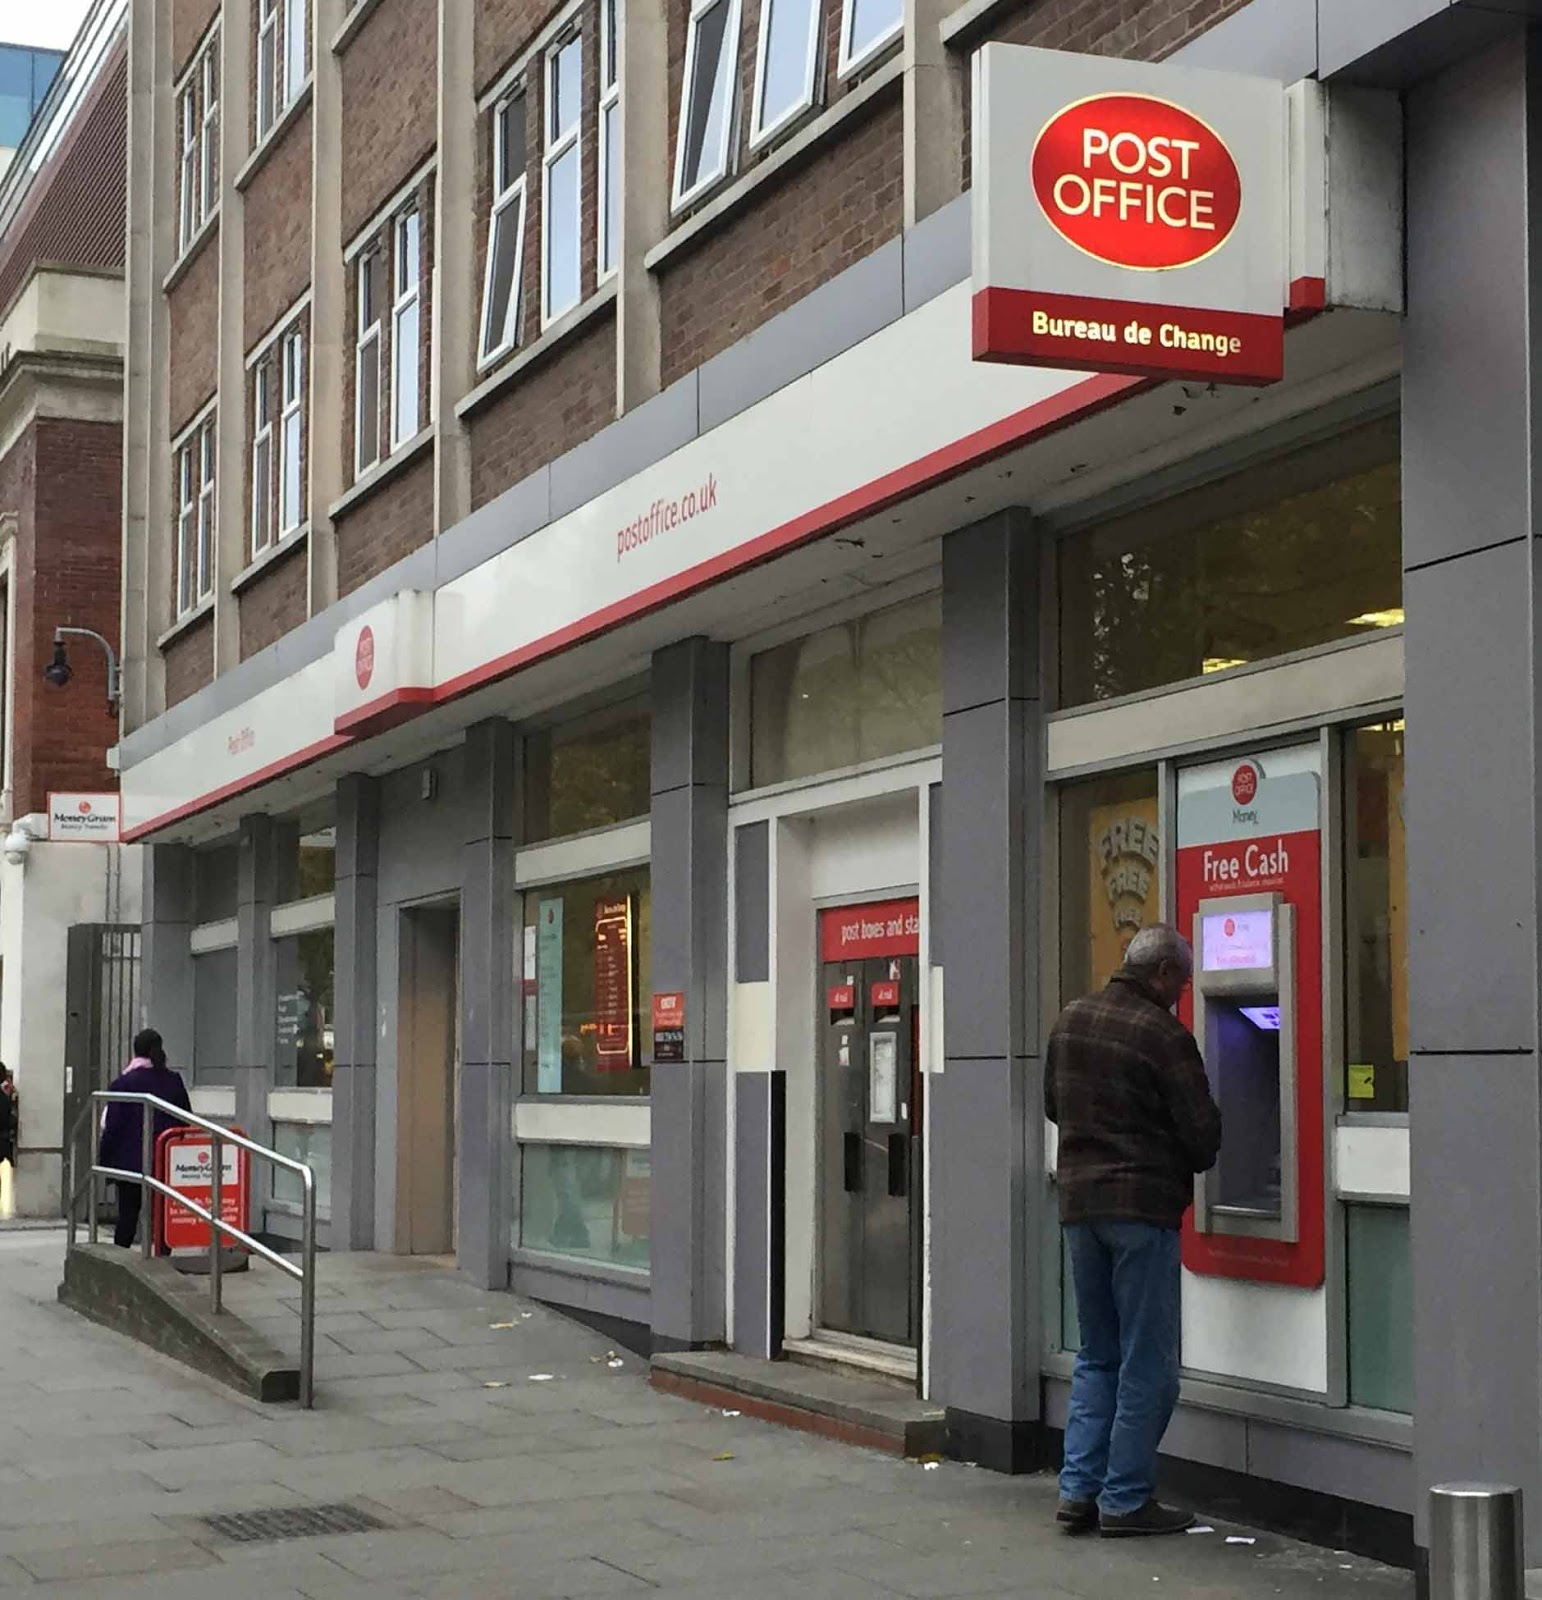 Shepherd's Bush Blog: Shepherd's Bush Post Office To Close?